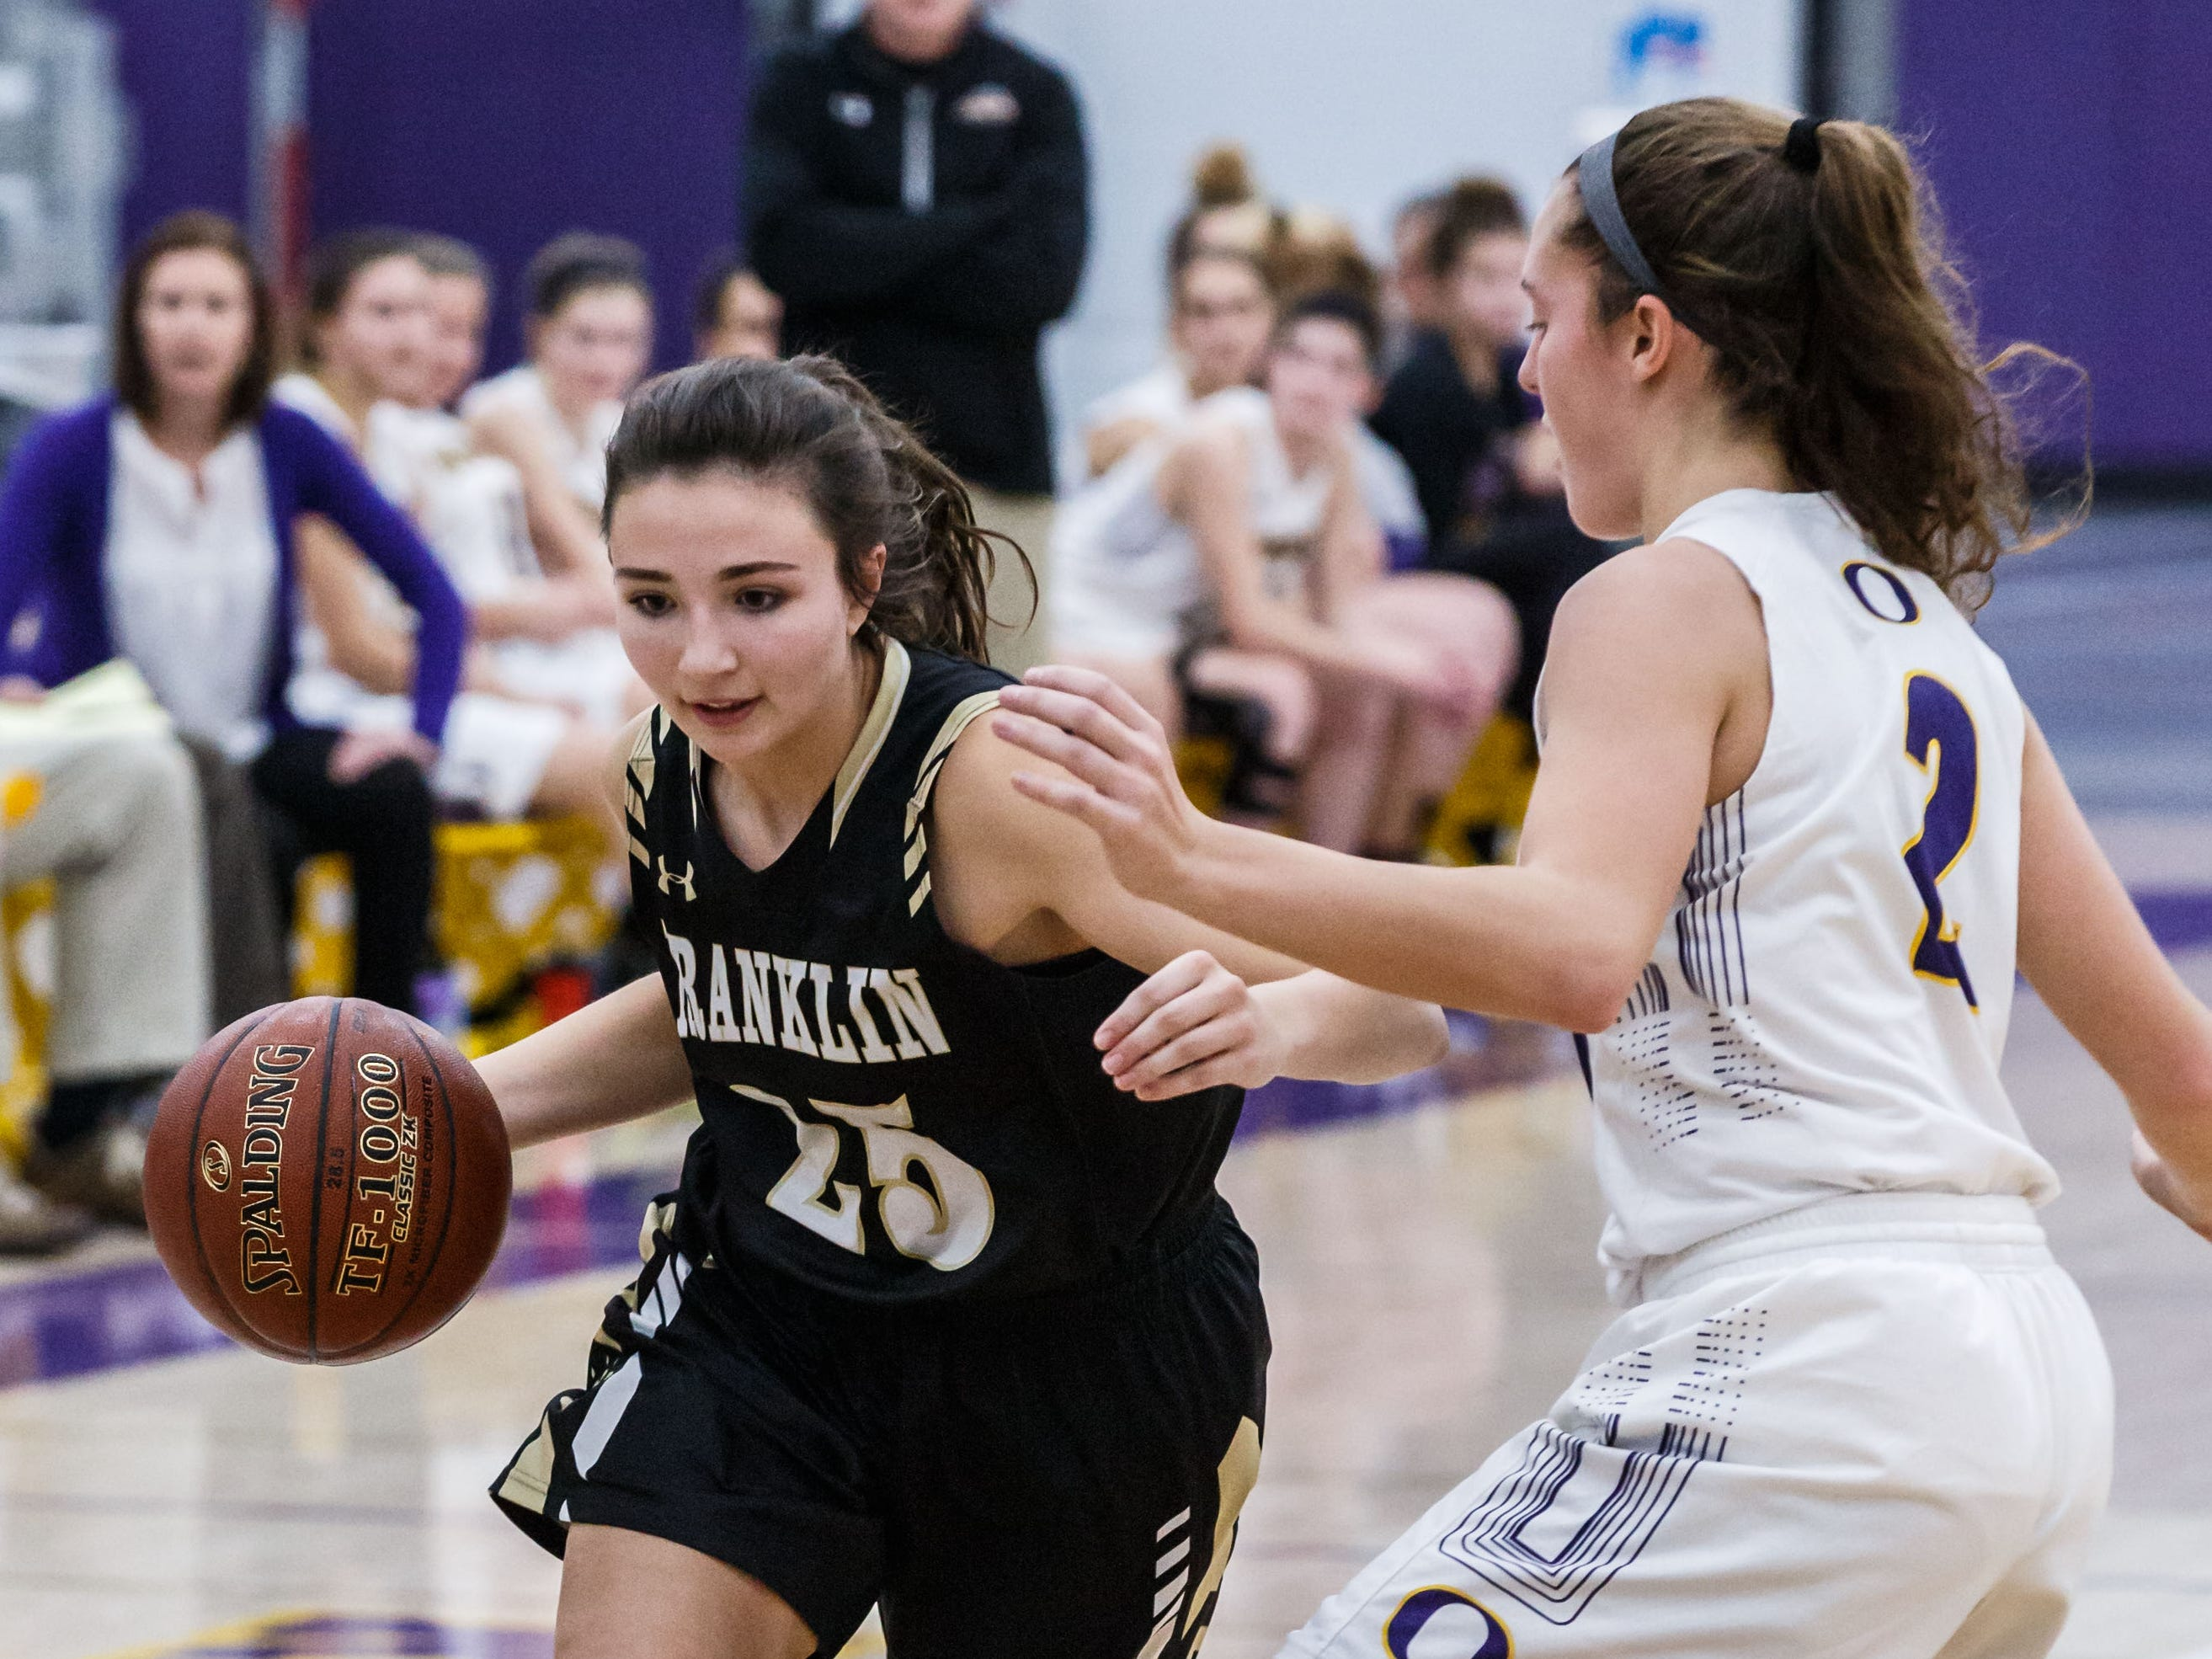 Franklin senior Isabelle Jardas (25) drives past Oconomowoc's Elizabeth Cleary (2) during the game at Oconomowoc on Monday, Nov. 19, 2018.